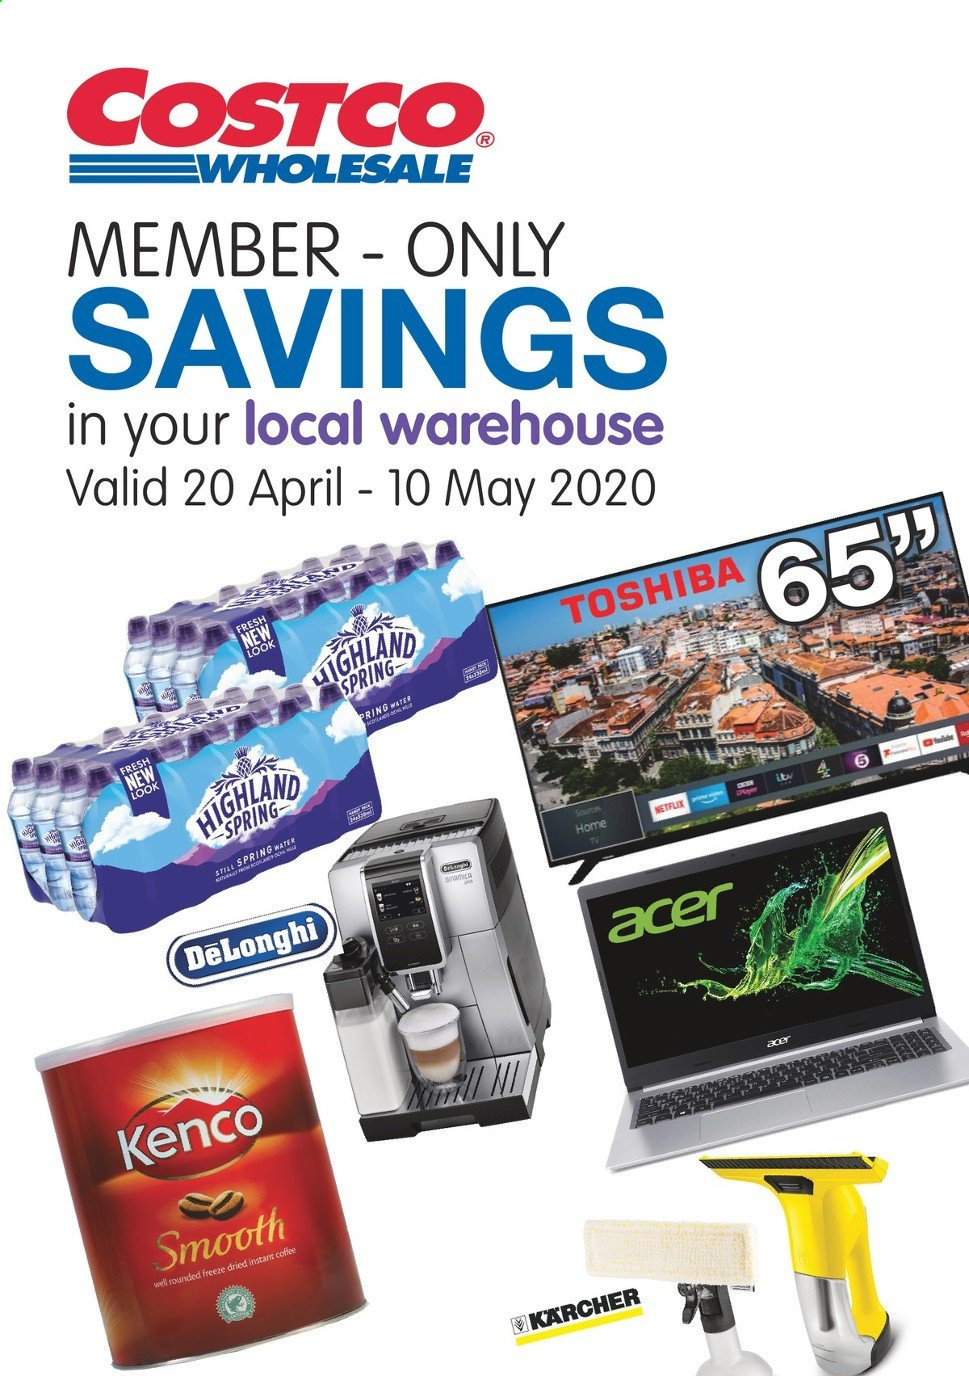 Costco offer  - 20.4.2020 - 10.5.2020. Page 1.